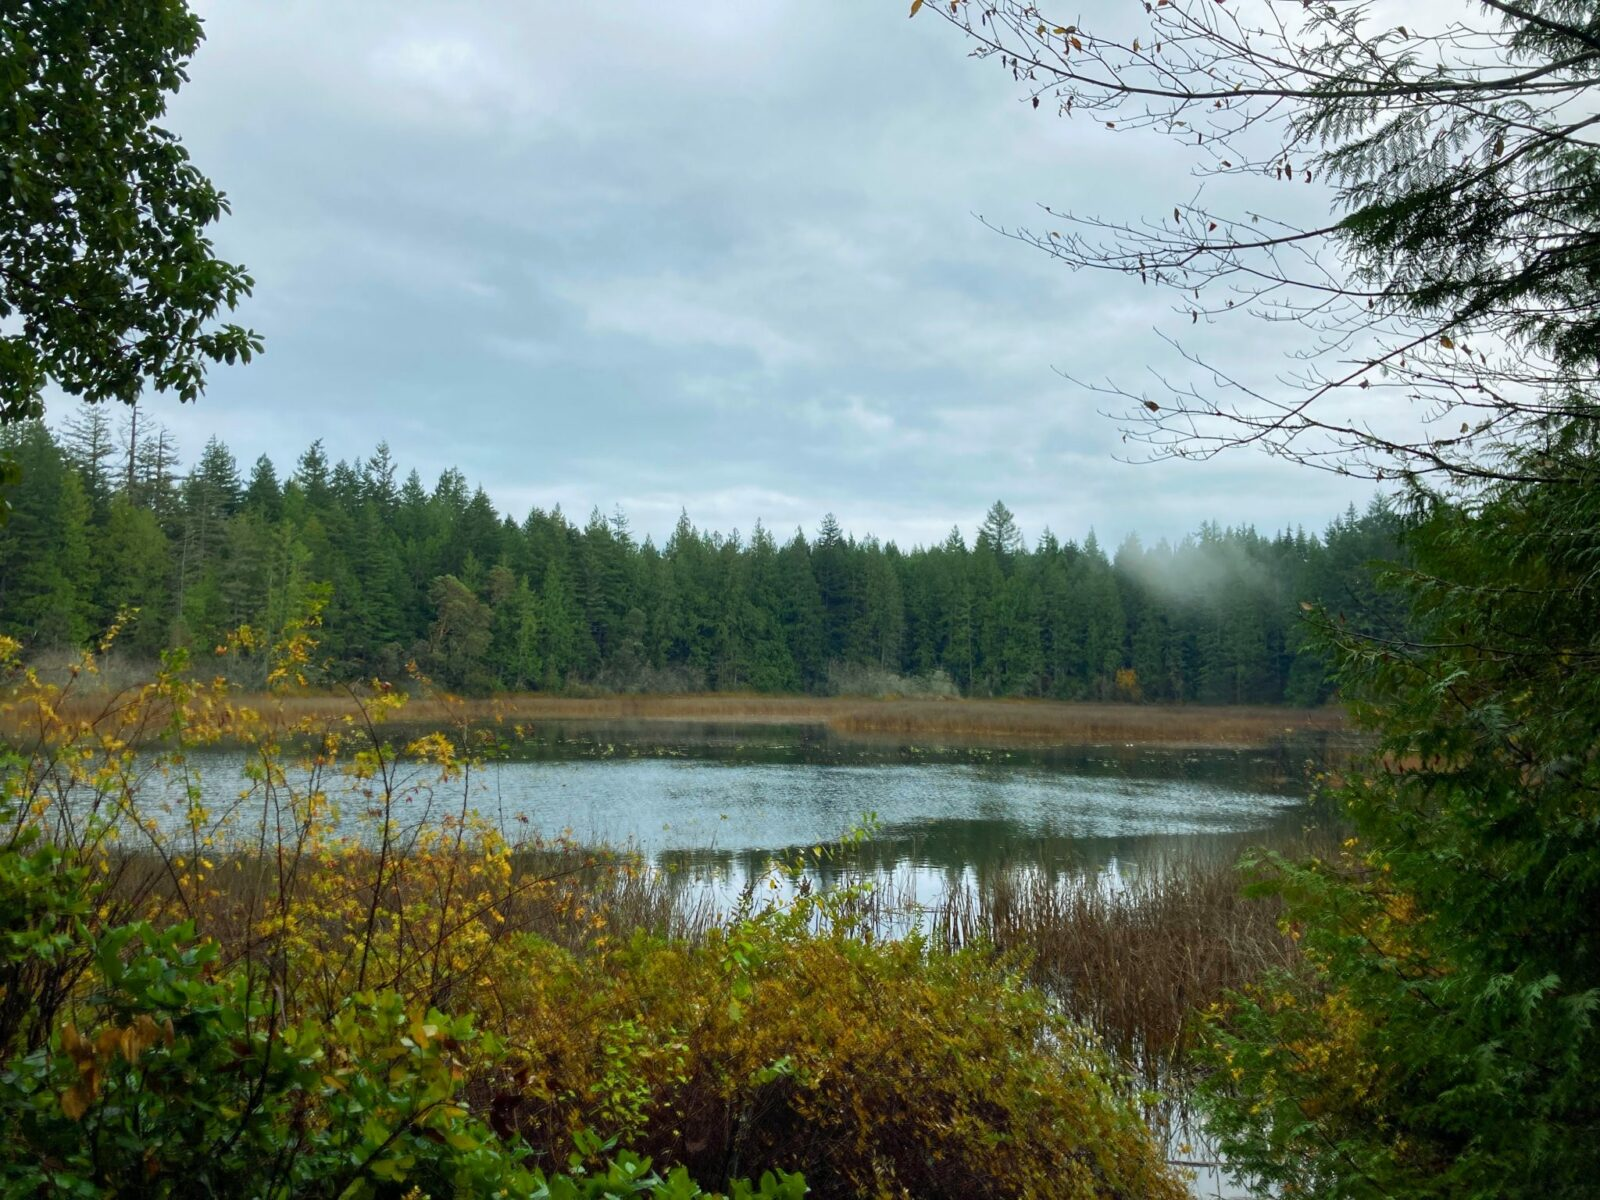 A shallow lake surrounded by reeds, shrubs and evergreen trees on a cloudy winter day in Gazzam Lake Nature Preserve, a hike on bainbridge island